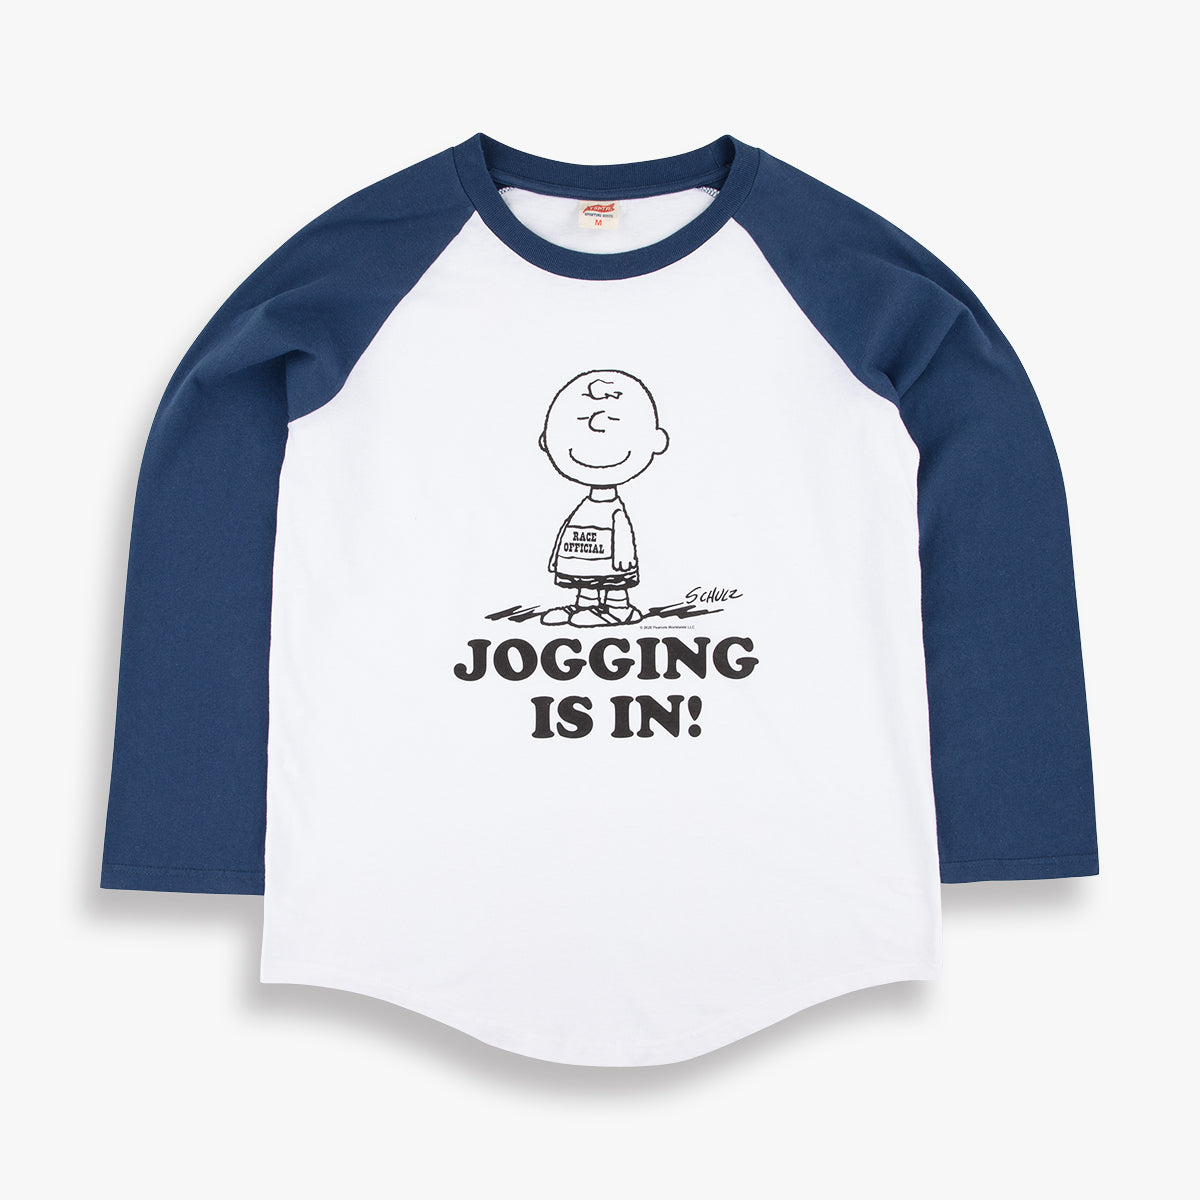 Jogging is in! baseball raglan